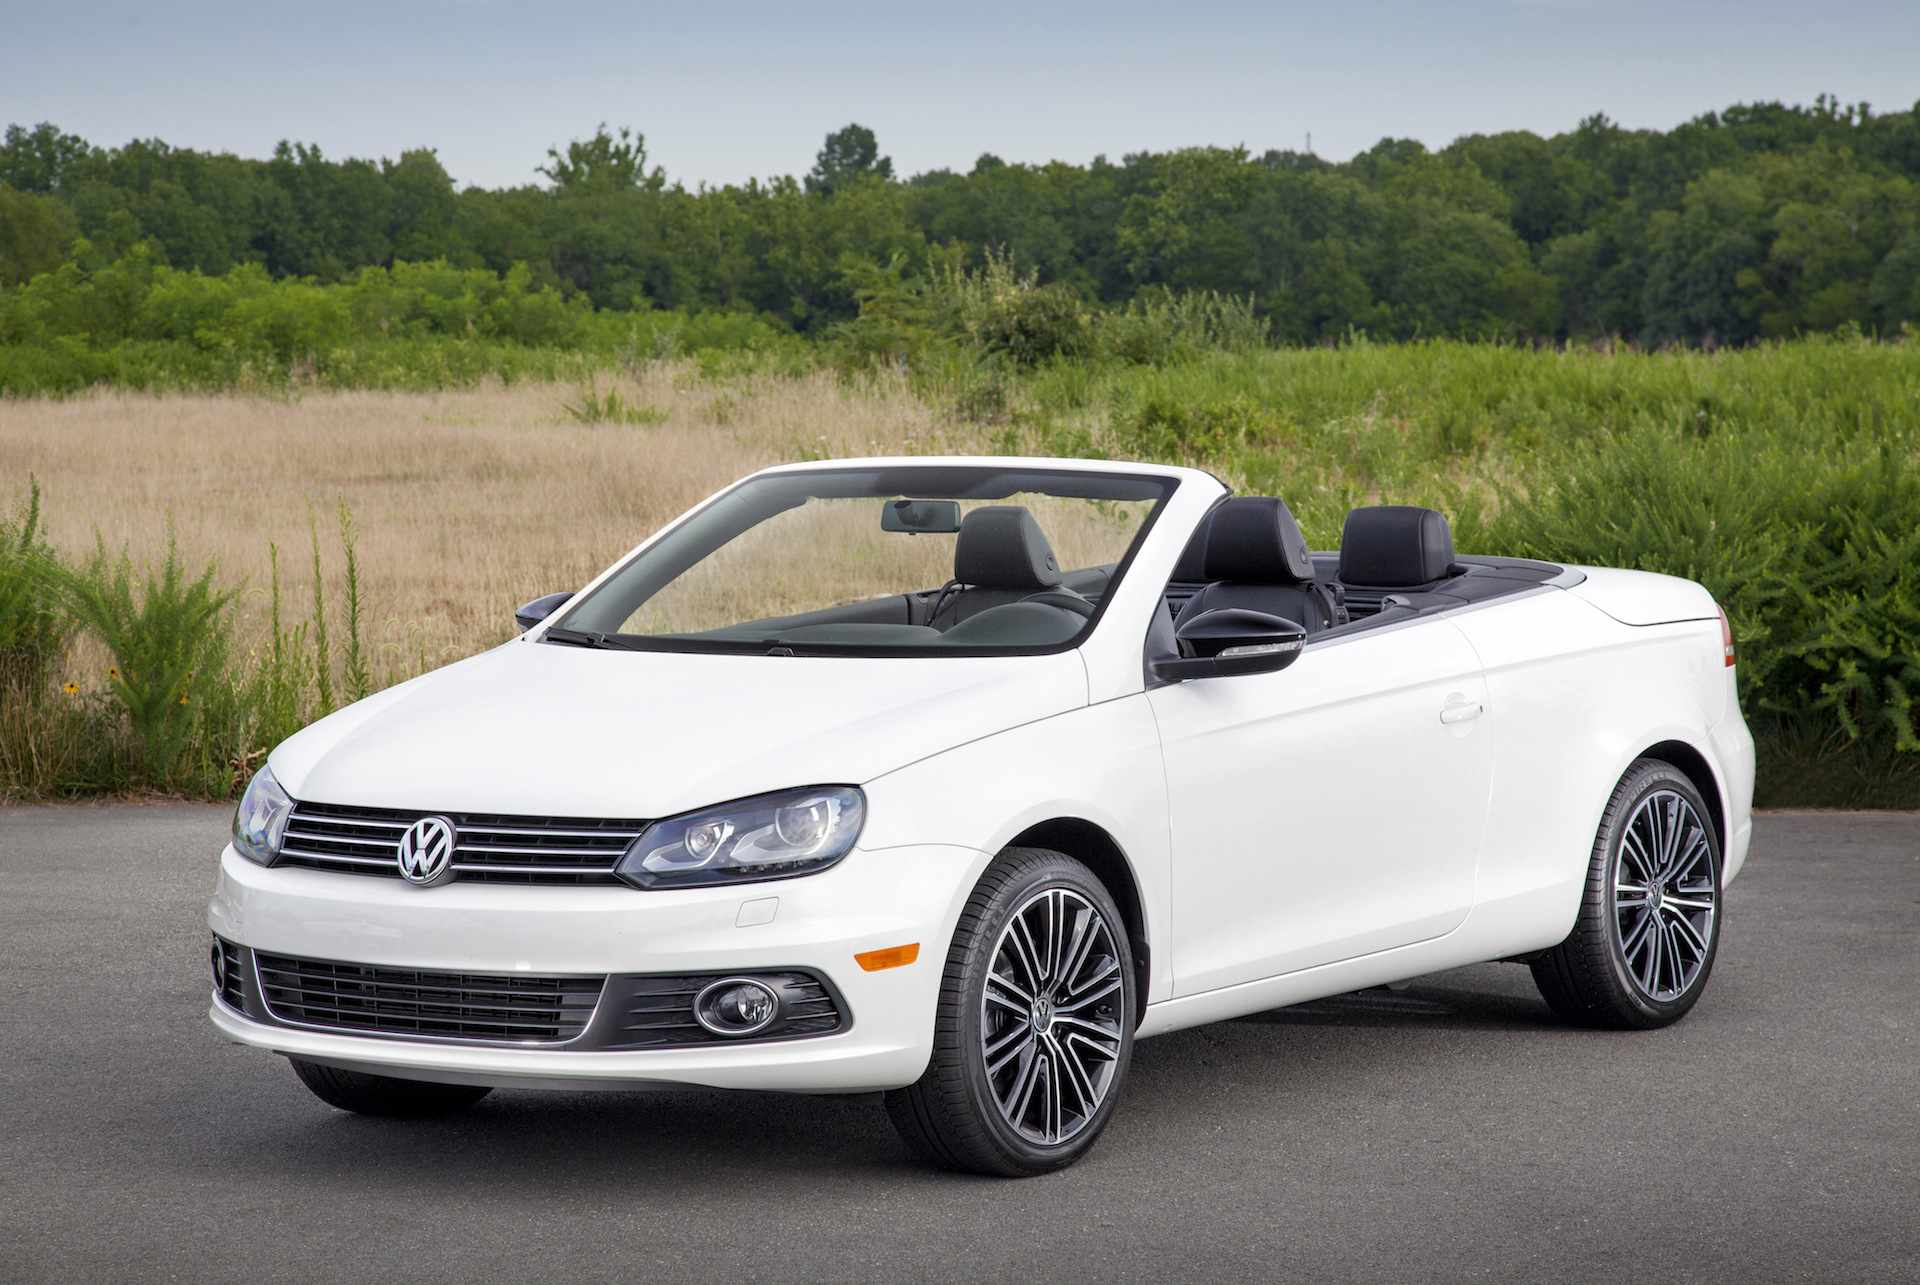 2016 Volkswagen Eos Vw Review Ratings Specs Prices